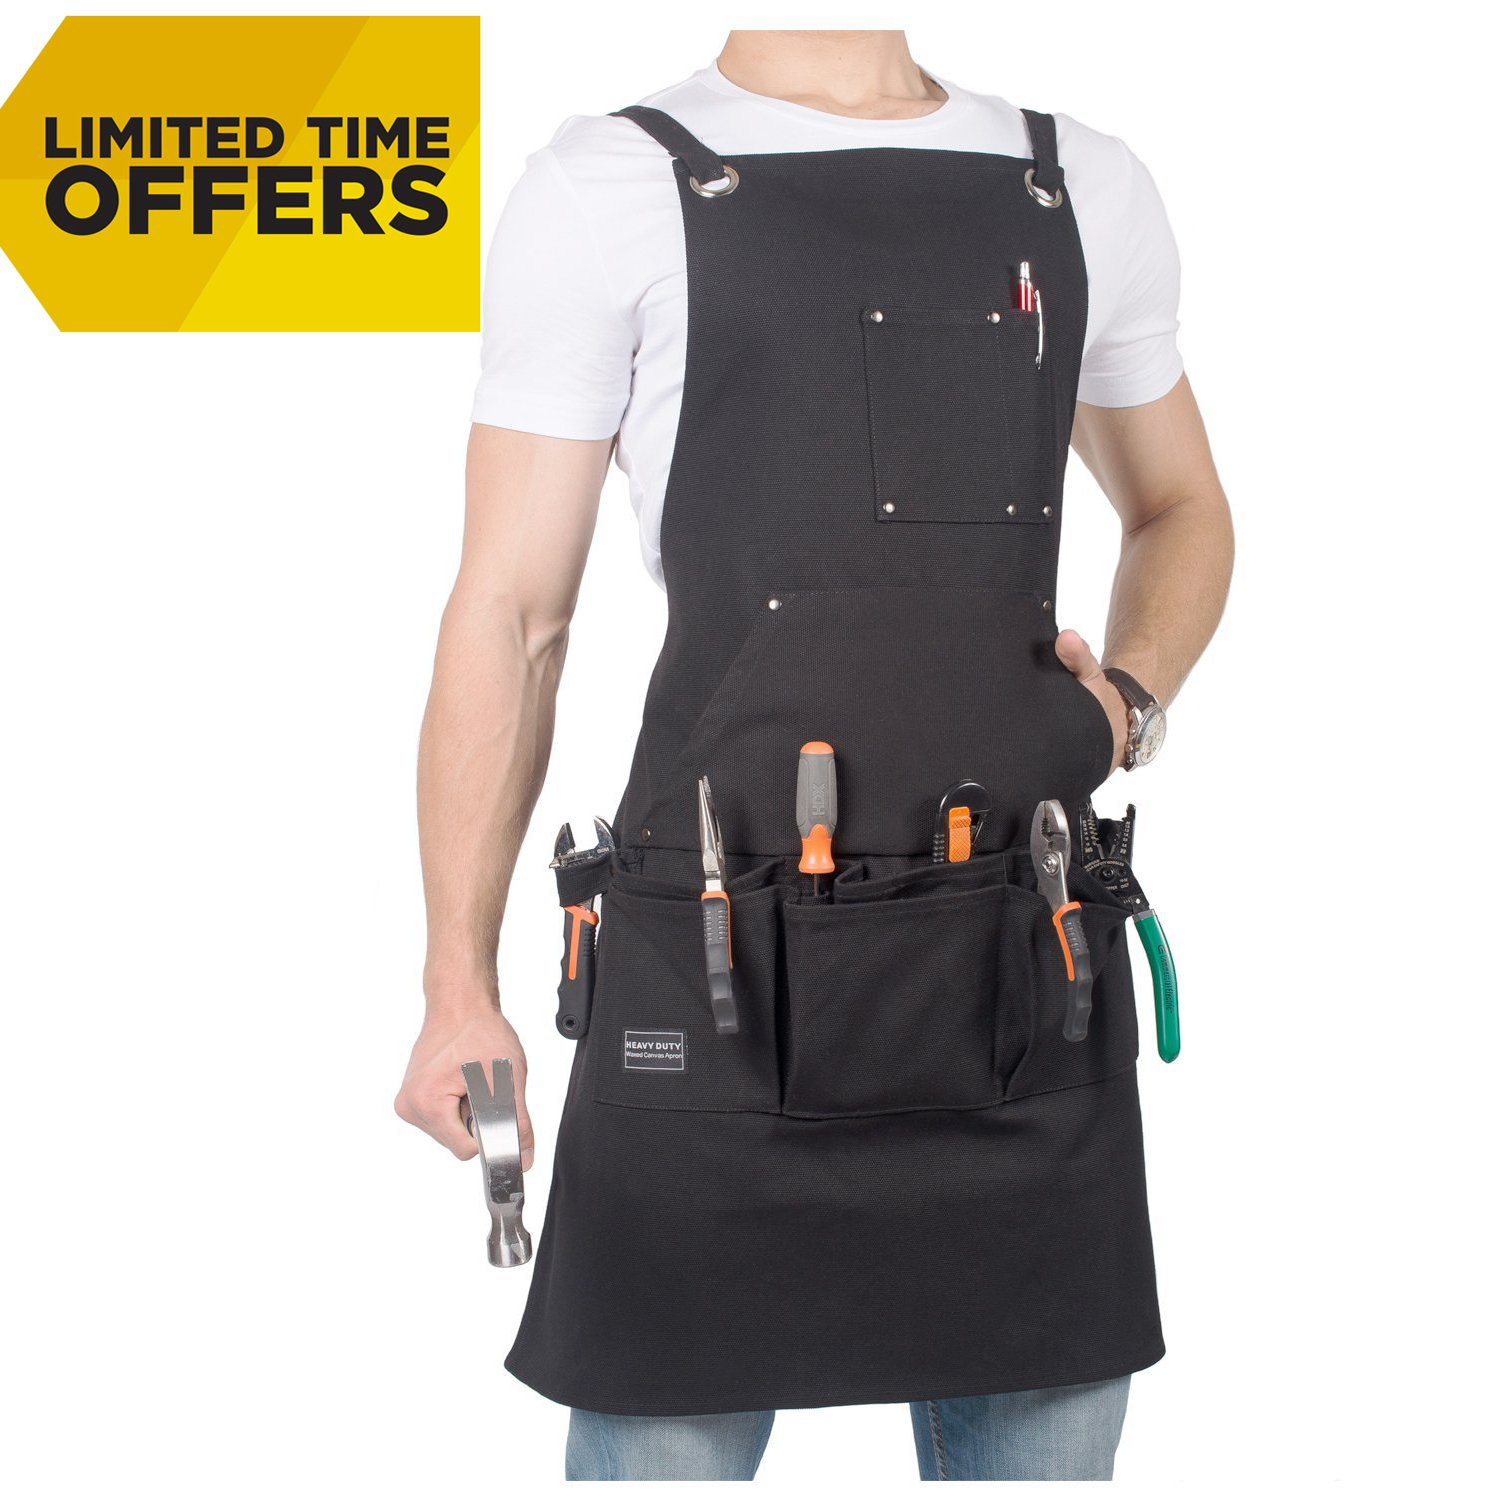 Waxed Canvas Tool Apron-Heavy Duty Work Shop Apron with 12 Pockets, Cross-back Straps - Adjustable Size M to XXL for Men & Women -Stylish for Professional Woodwoking, Carpenter, Blacksmith,Machinist